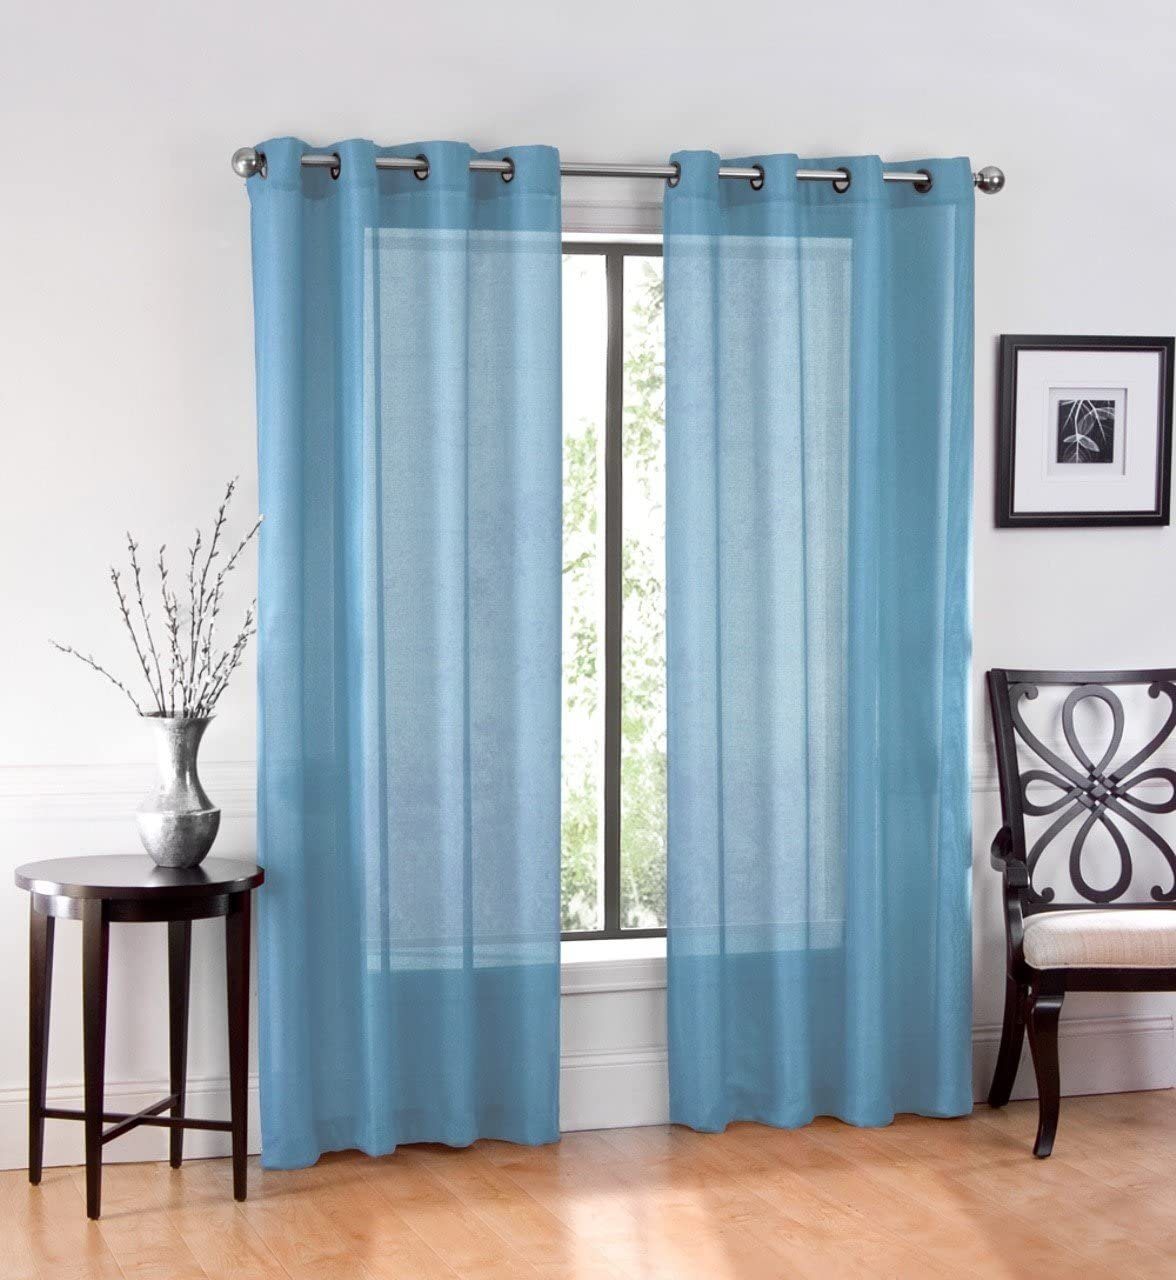 Ruthy S Textile 2 Piece Window Sheer Curtains Grommet Panels 54 X 108 Total 108 X 108 Inch Length For Kitchen Bedroom Living Room Color Blue Walmart Com Walmart Com